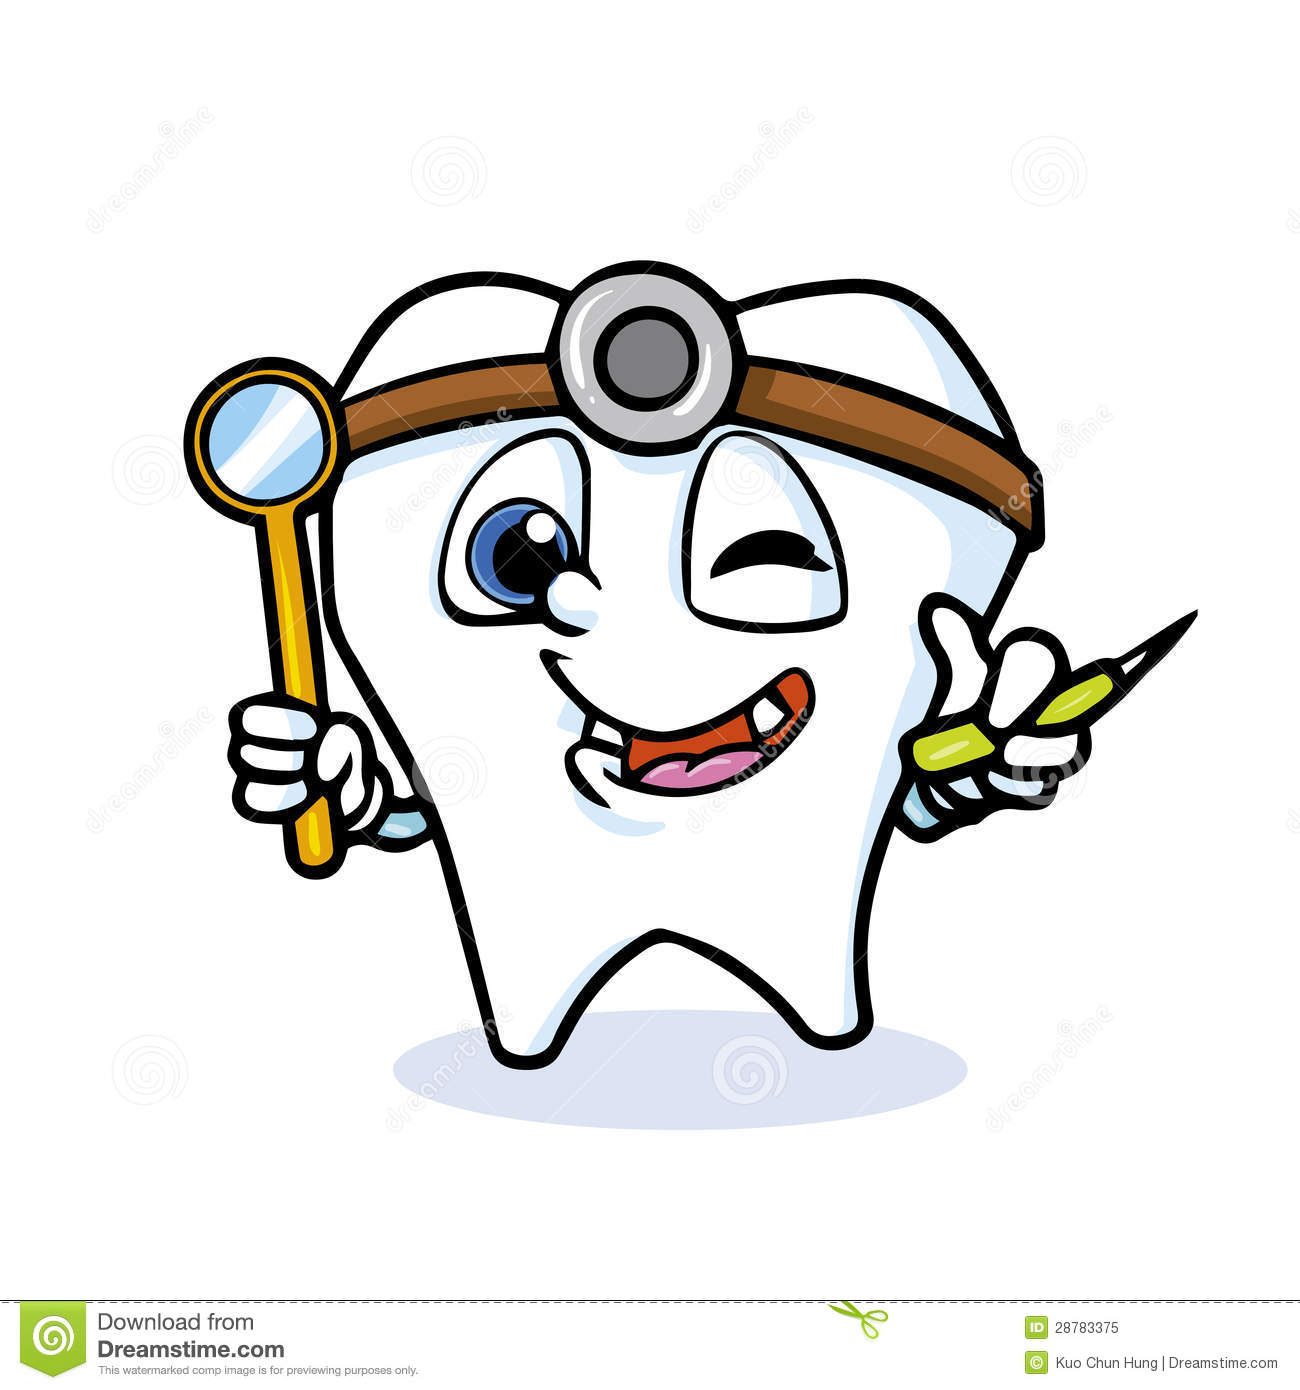 Funny dentist clipart png transparent download Funny Cartoon Teeth Dental Picture png transparent download